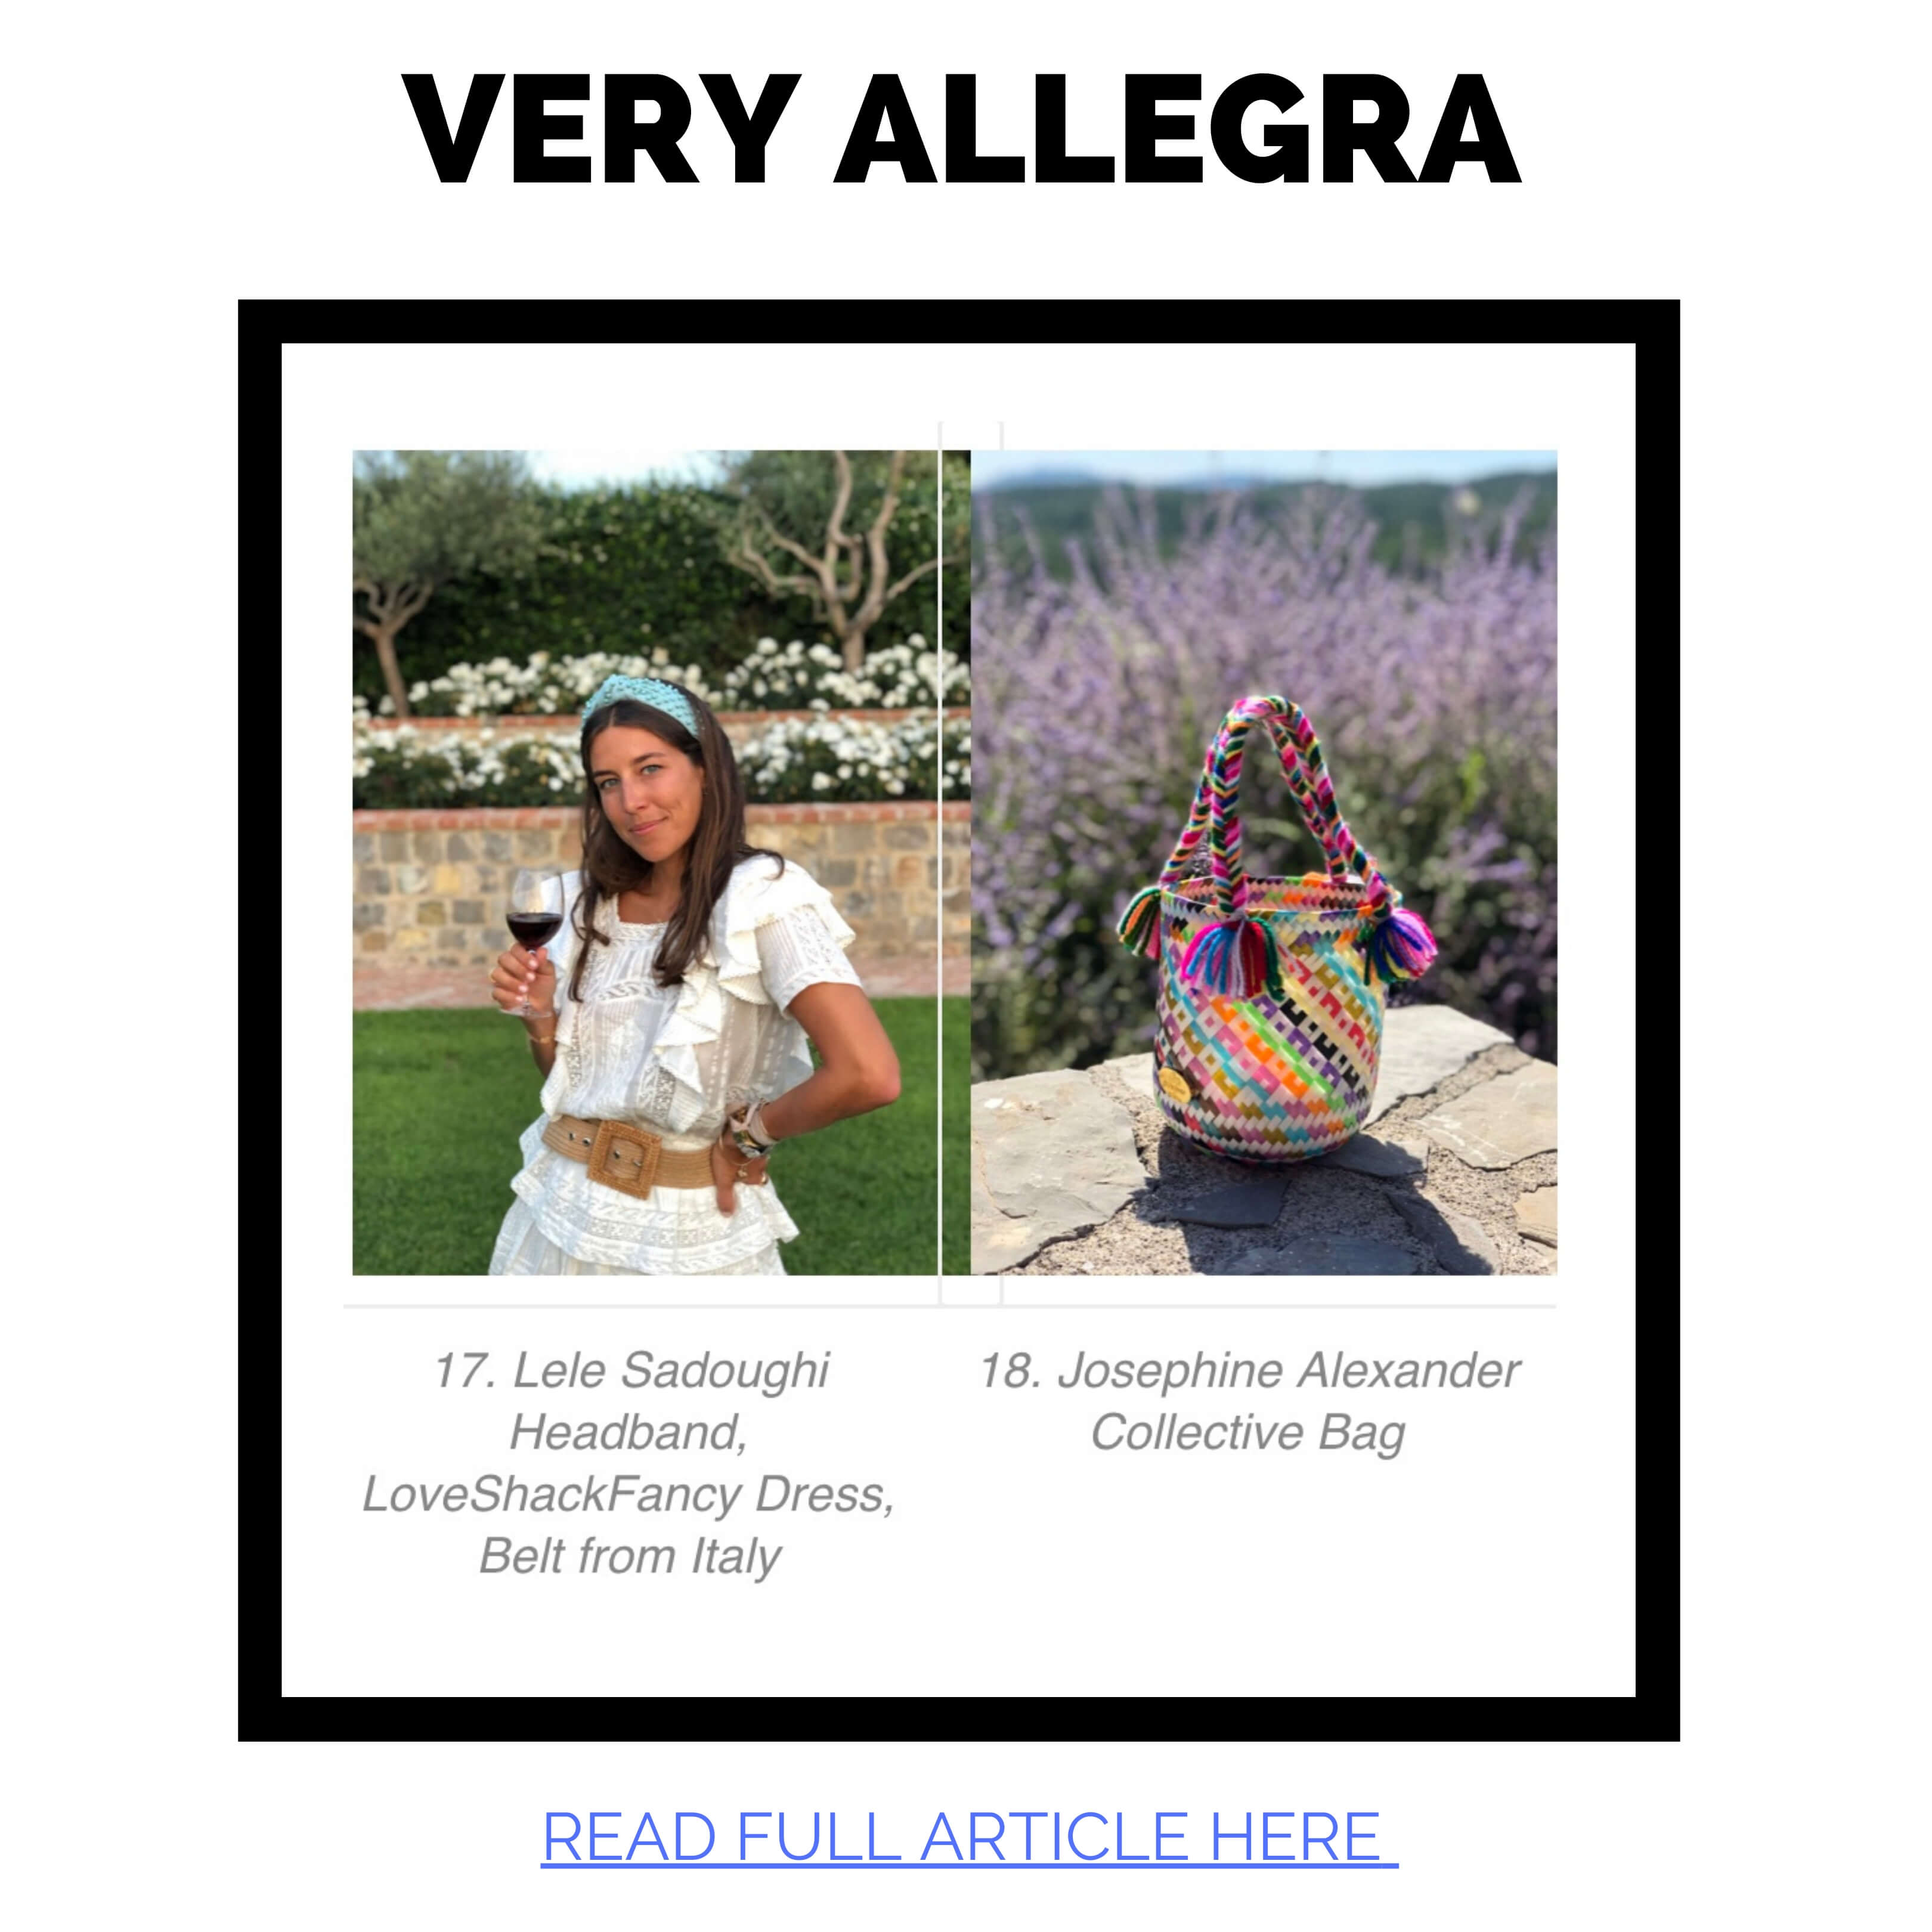 JAC Featured in Very Allegra